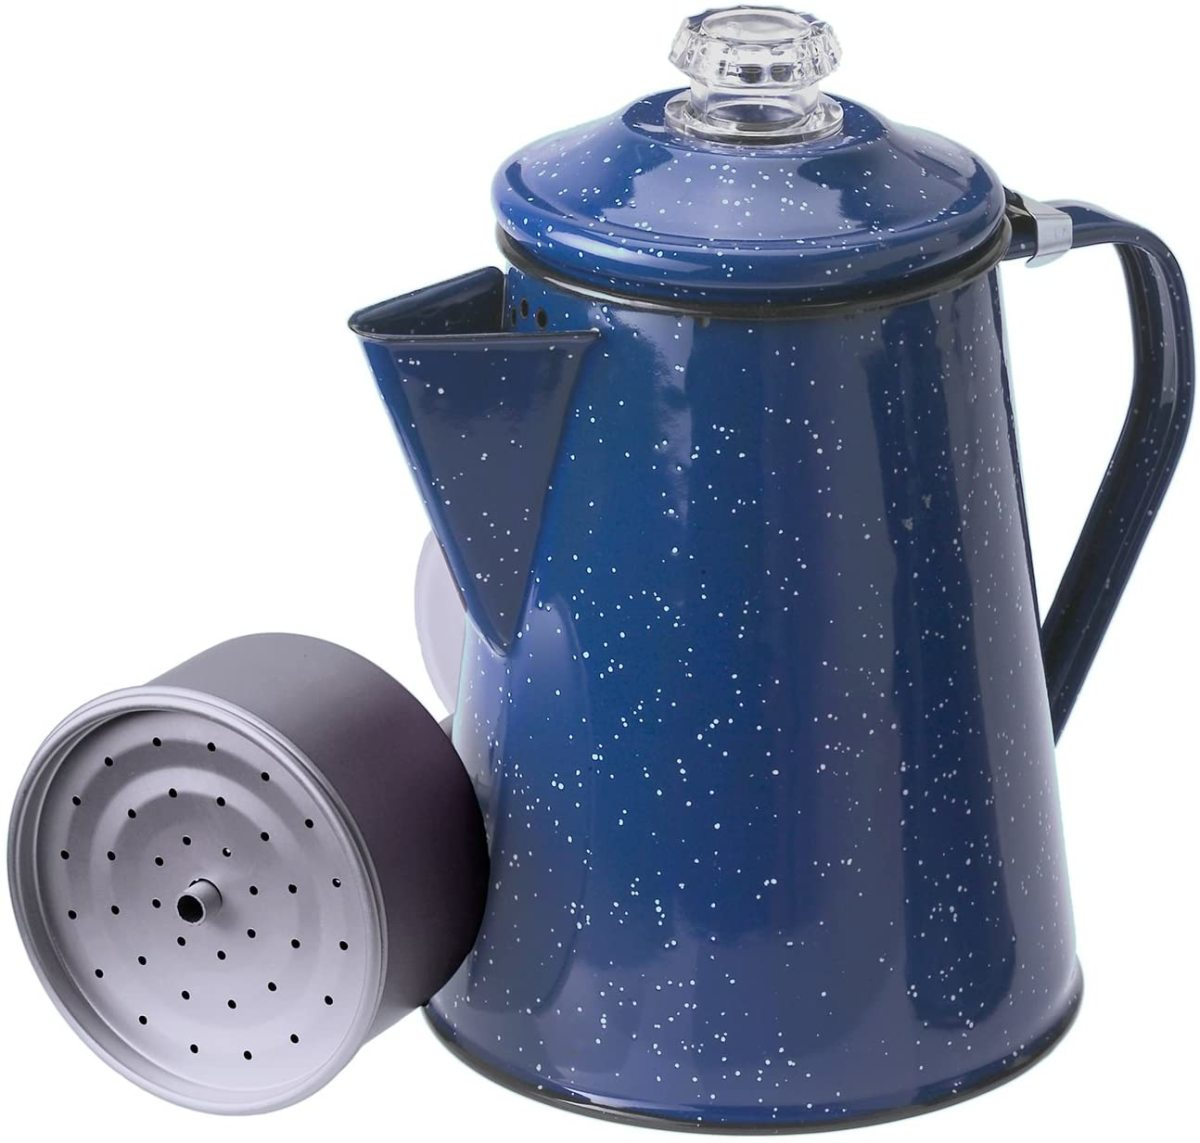 GSI Outdoors 8 Cup Enamelware Percolator for Coffee. An excellent brewer for camping trips and outdoor use.